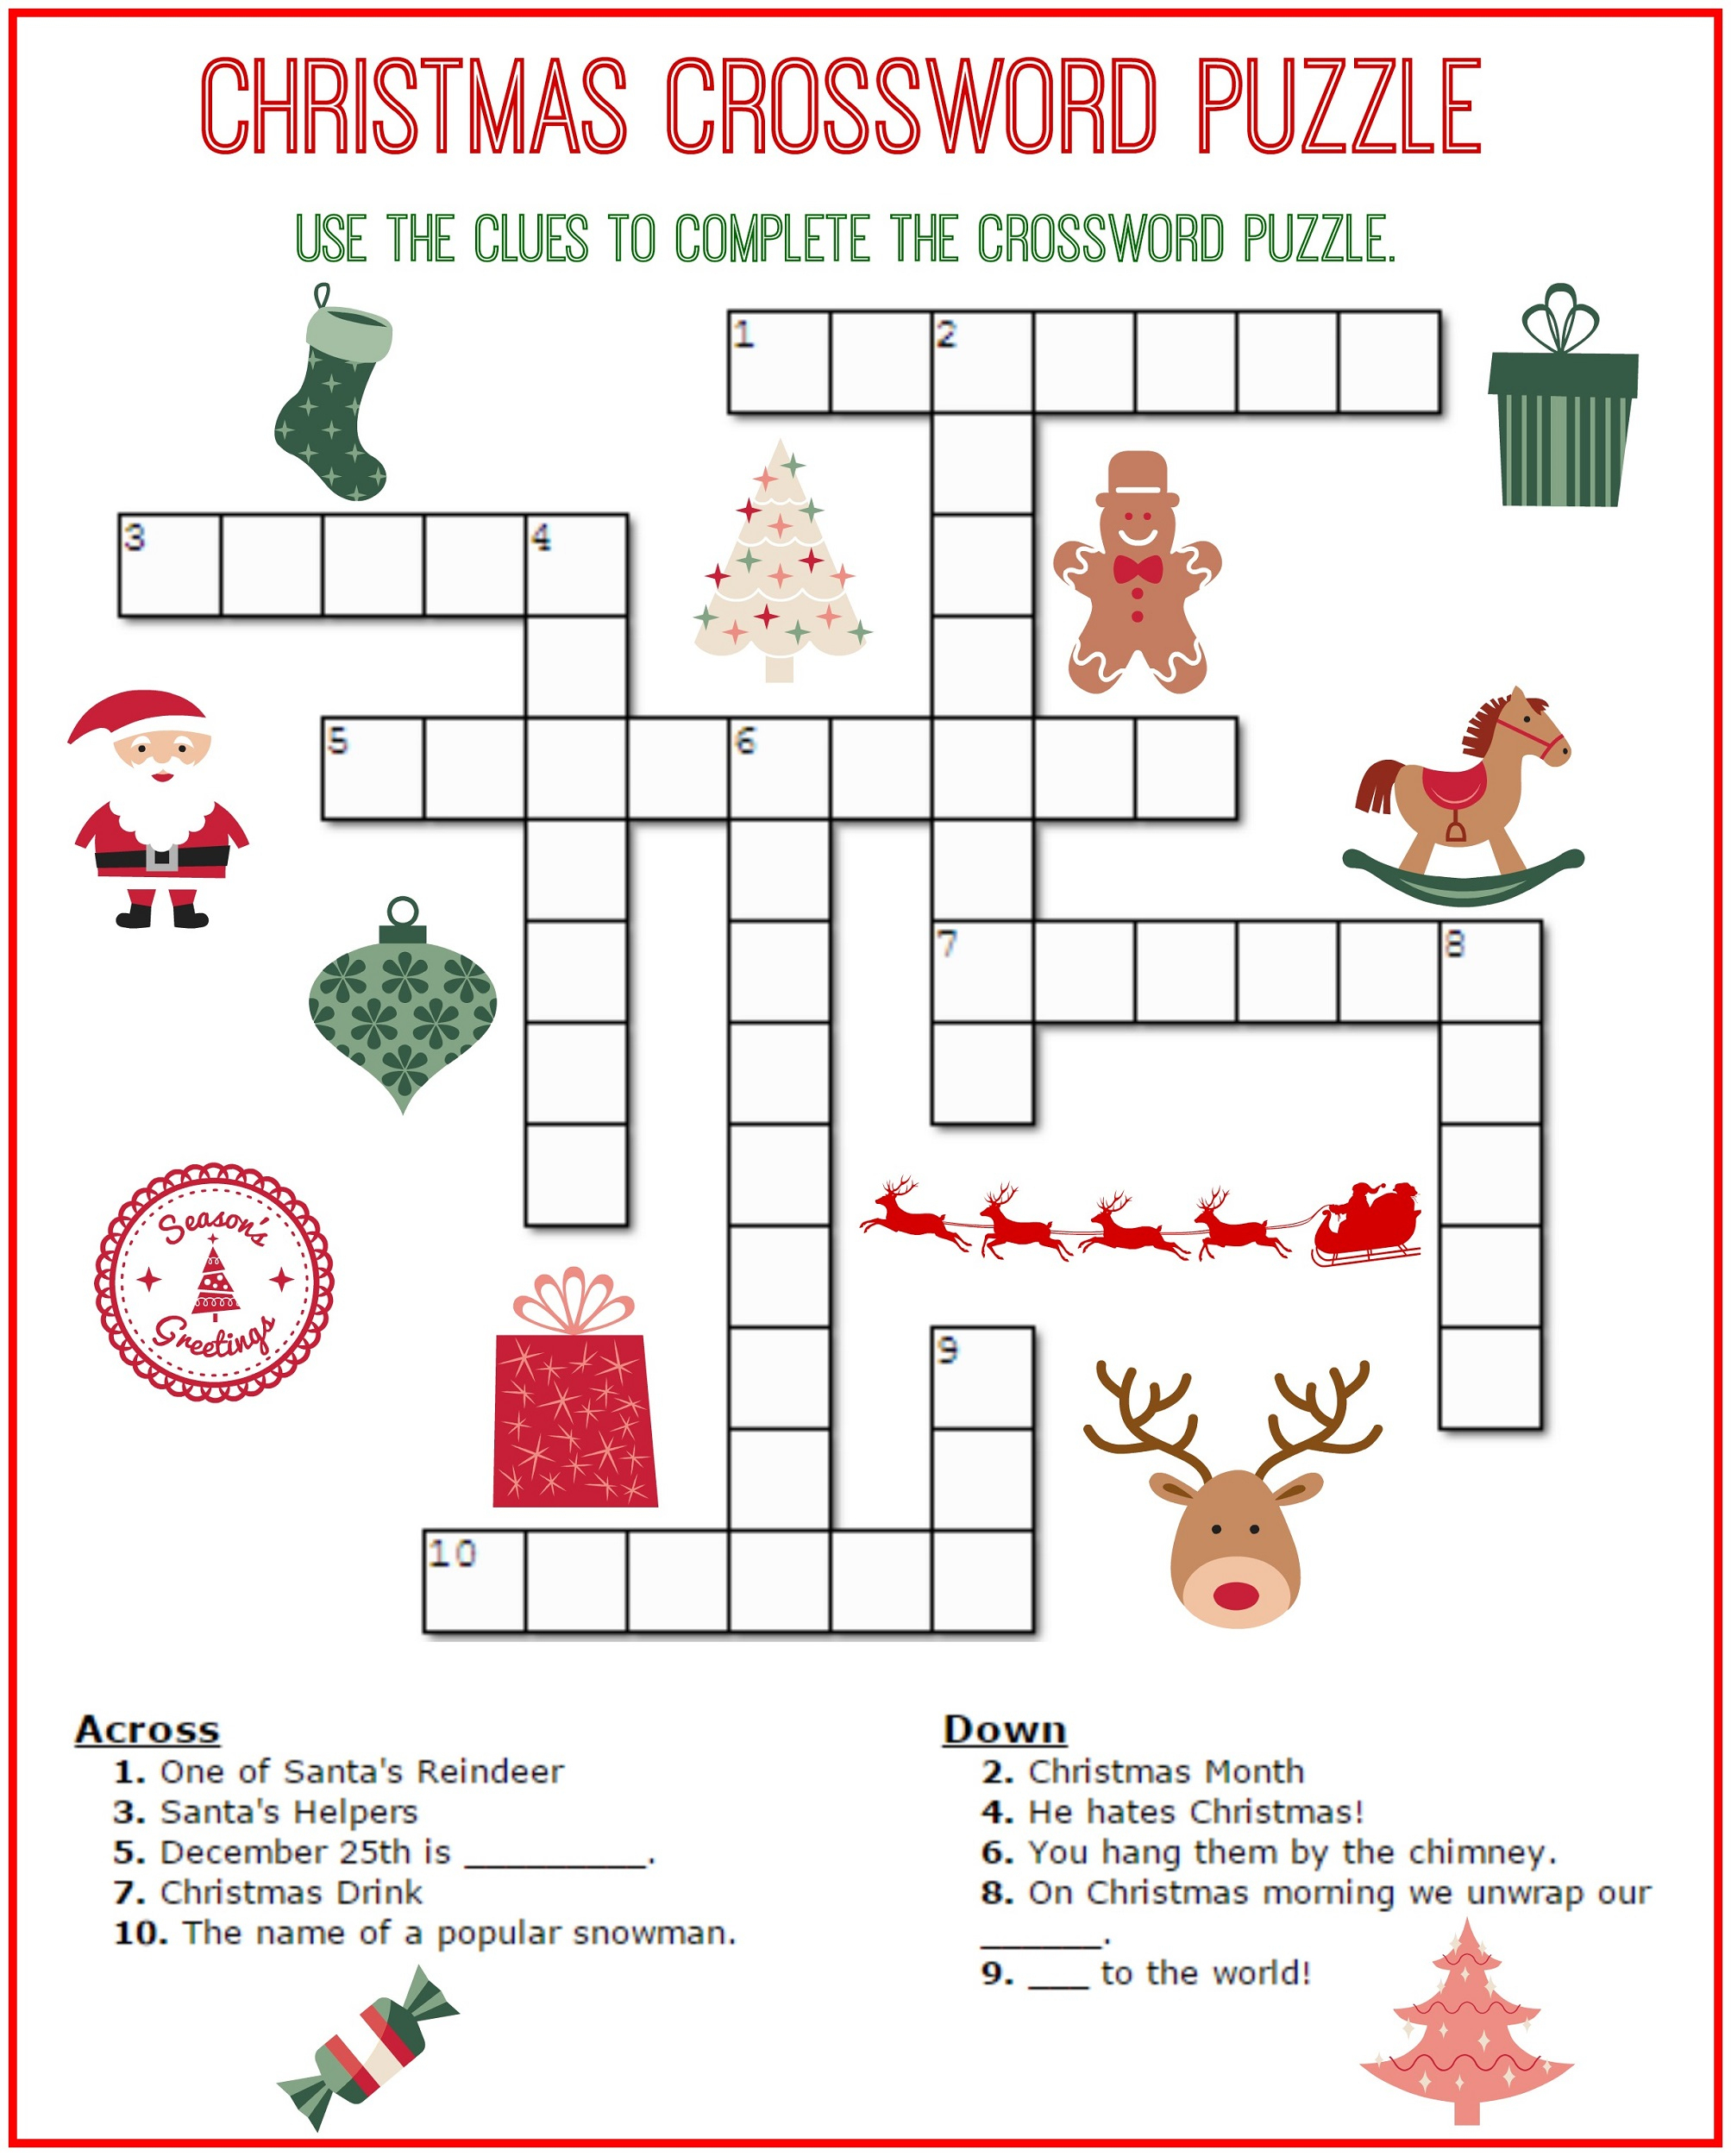 Crossword Puzzle Kids Printable 2017 | Kiddo Shelter - Free Easy - Printable Crossword Puzzles For 5Th Graders